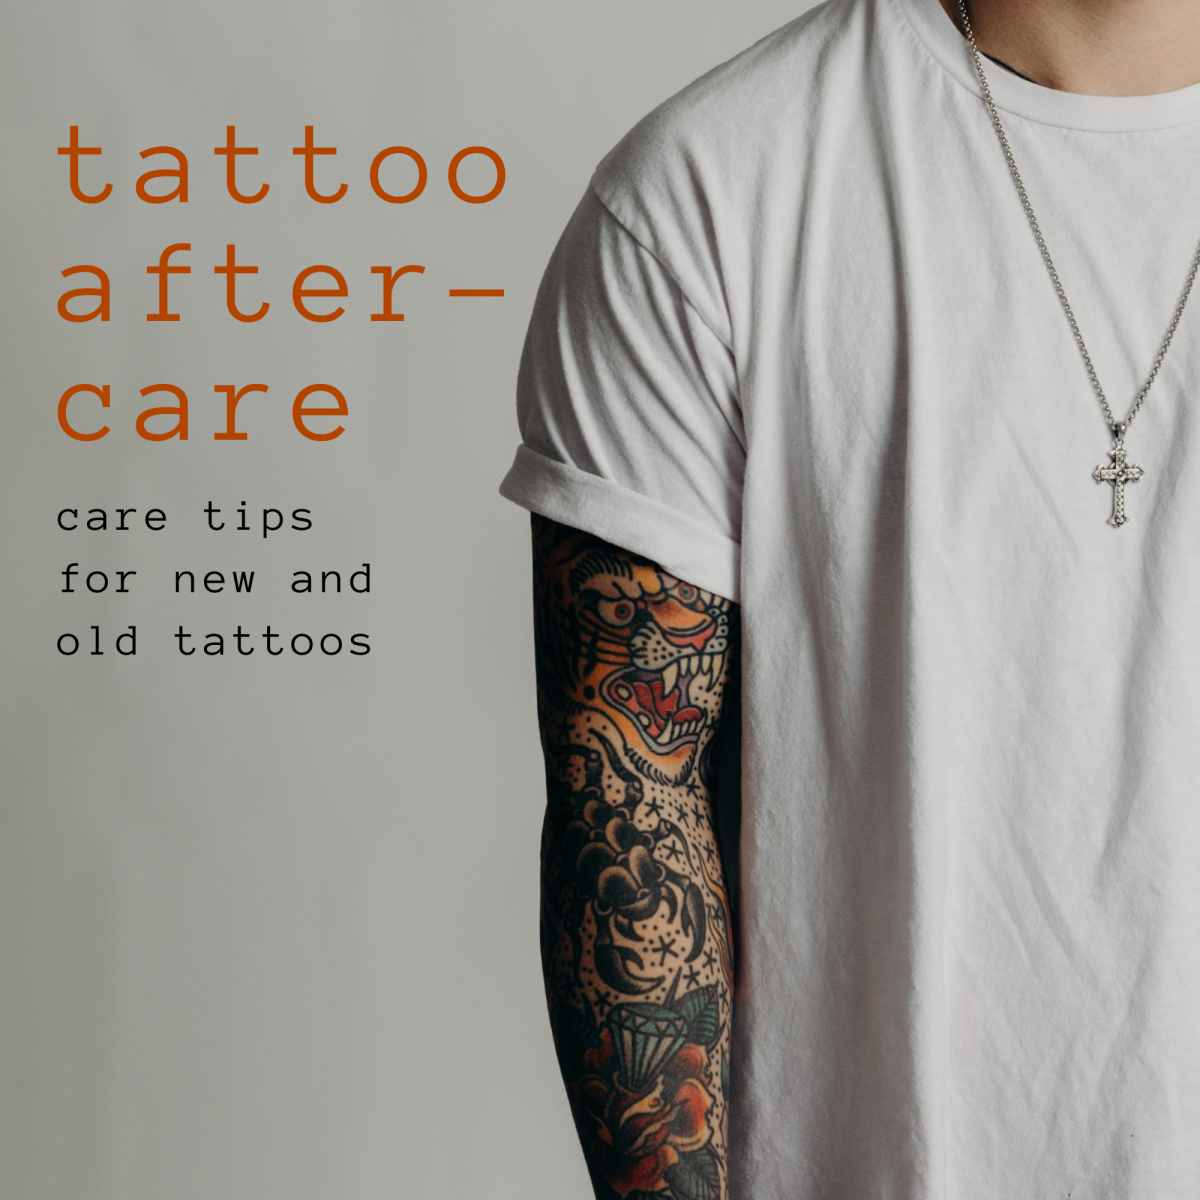 Tattoo aftercare tips to keep new tattoos from looking old.